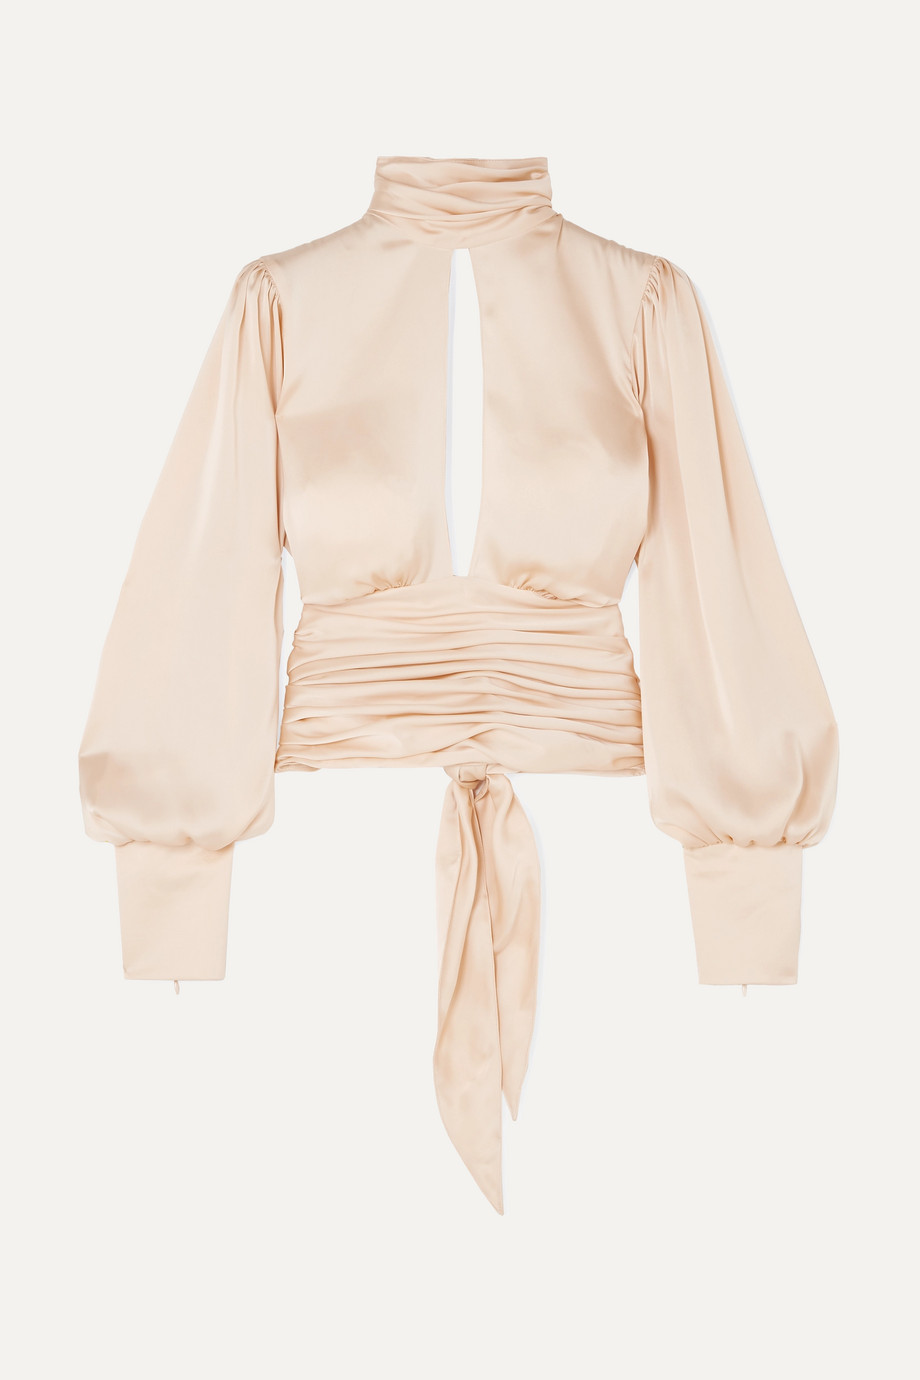 Orseund Iris Blouse dos ouvert en satin à fronces Night Out